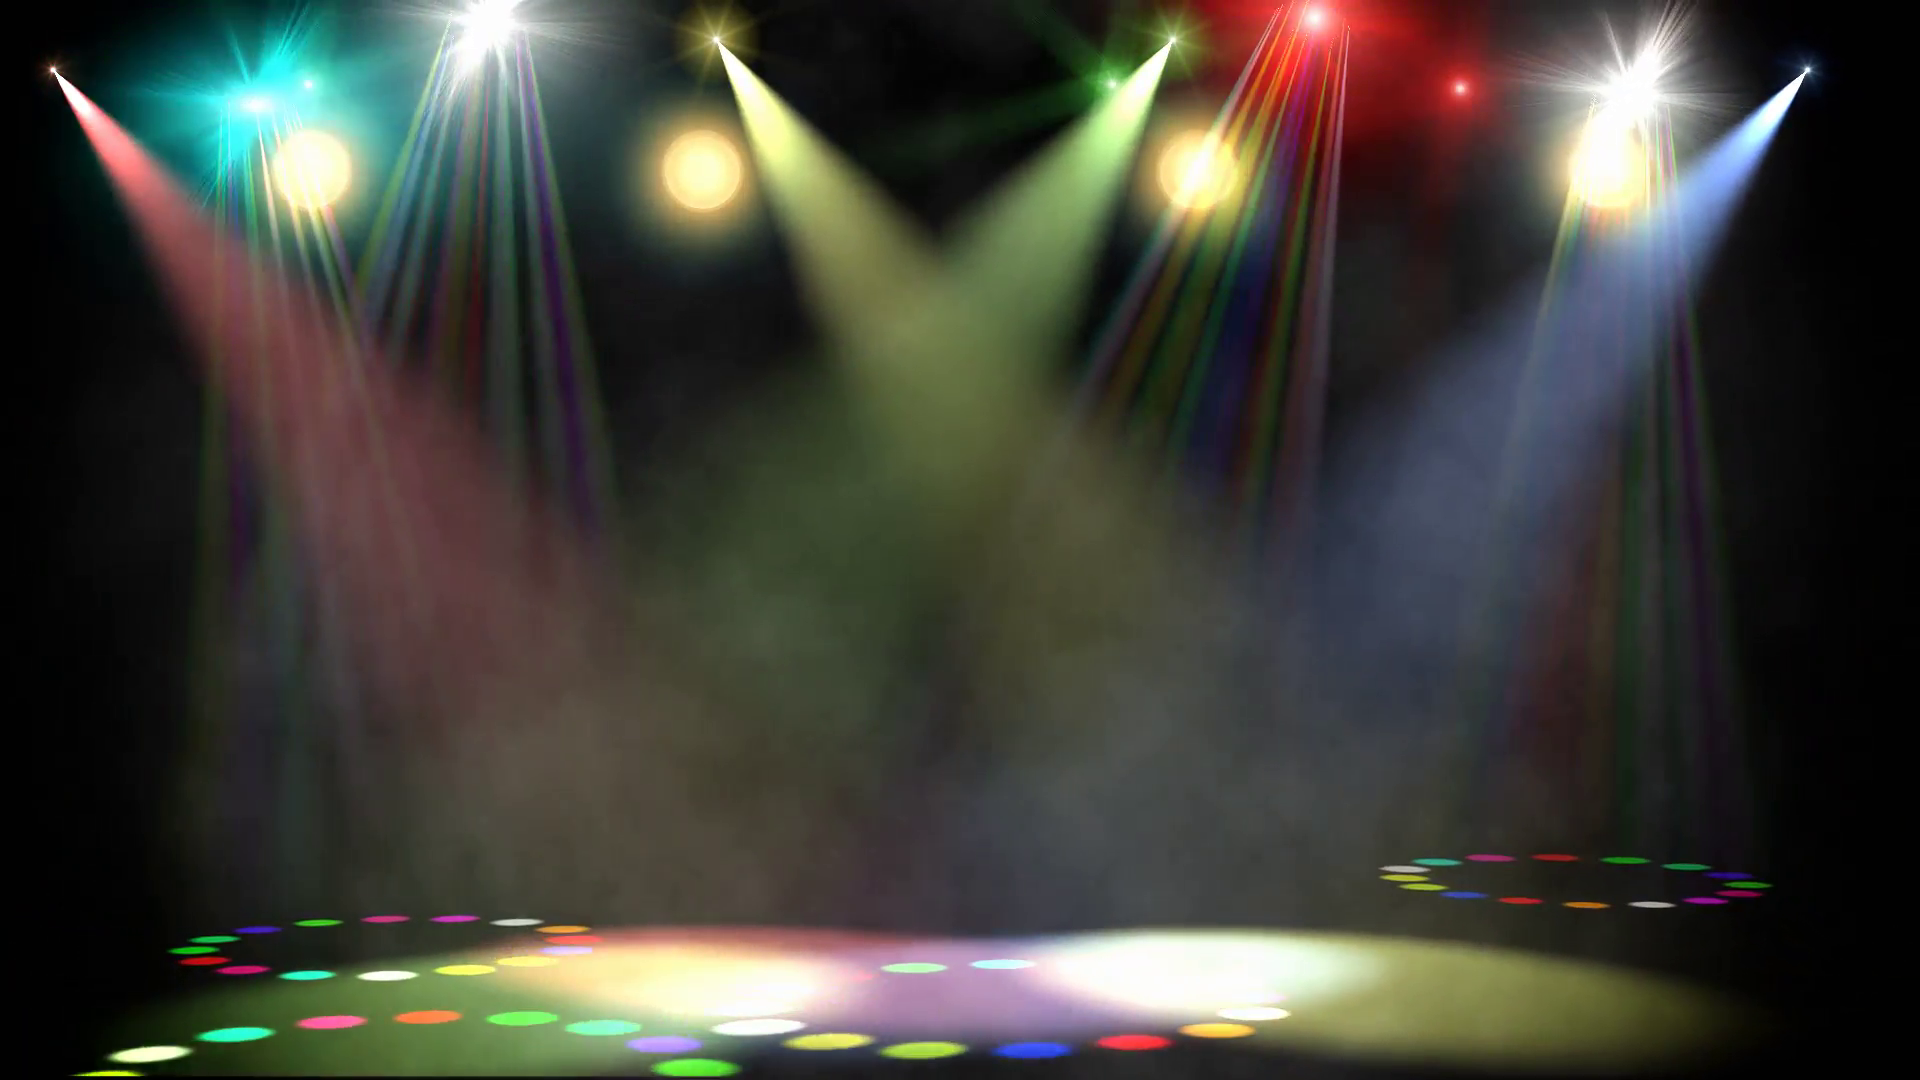 Swirling Colored Stage Spotlights.